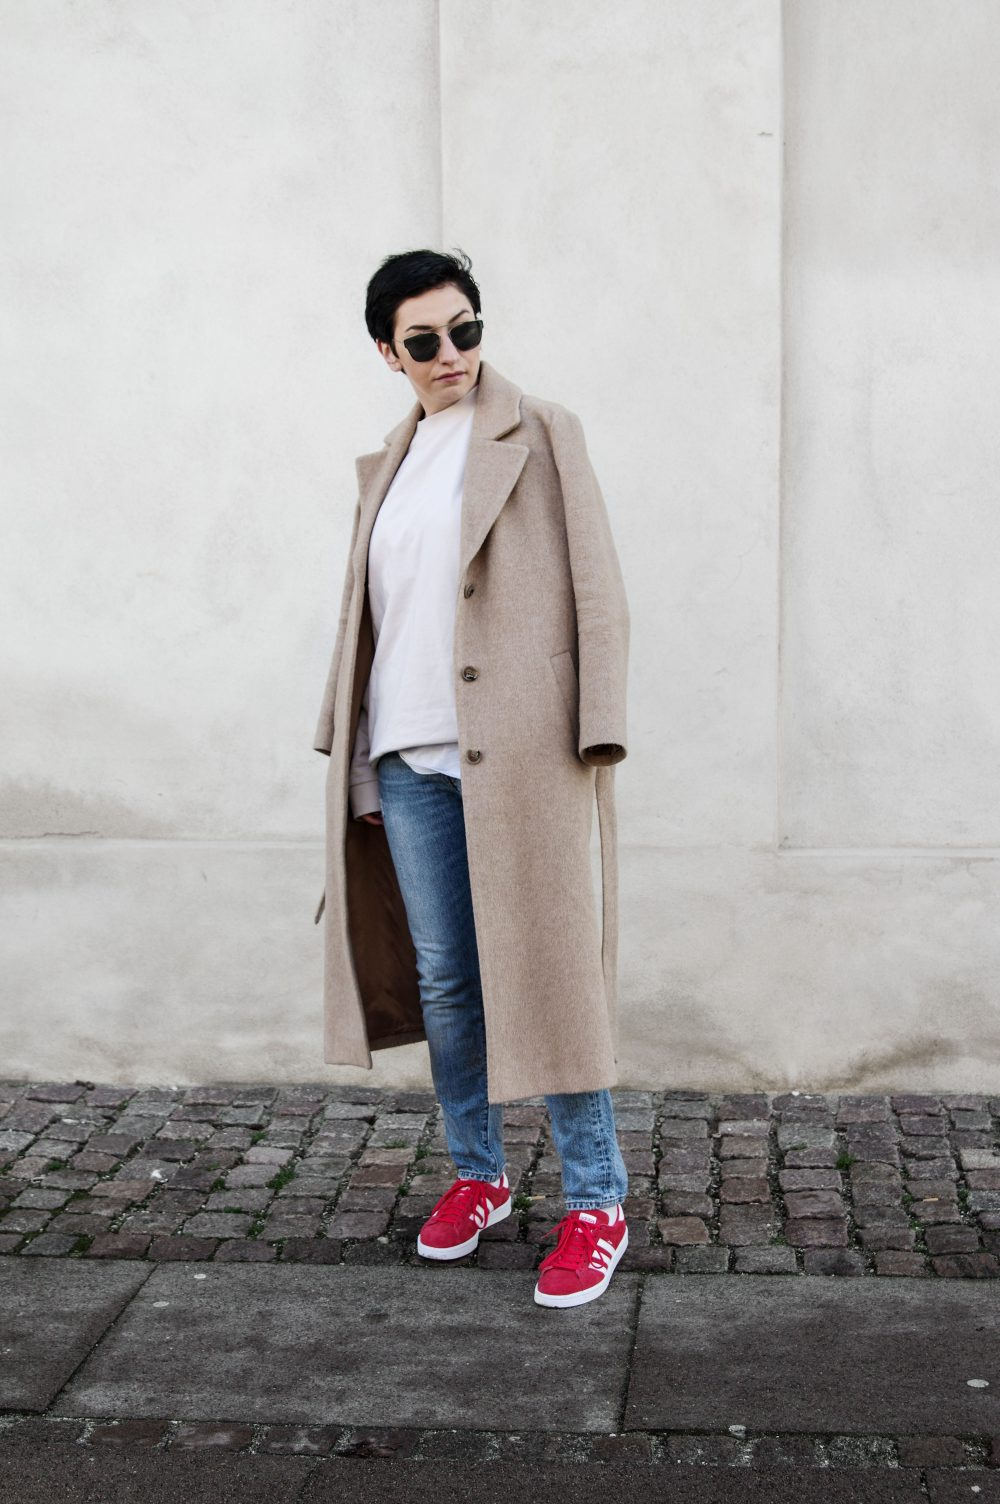 Scandinavian style, minimal streetstyle, copenhagen style, minimalistic style, coss stores, sweatshirt, short hair girl, dior sunglasses, casual outfit, spring outfit, outfit of the day 4